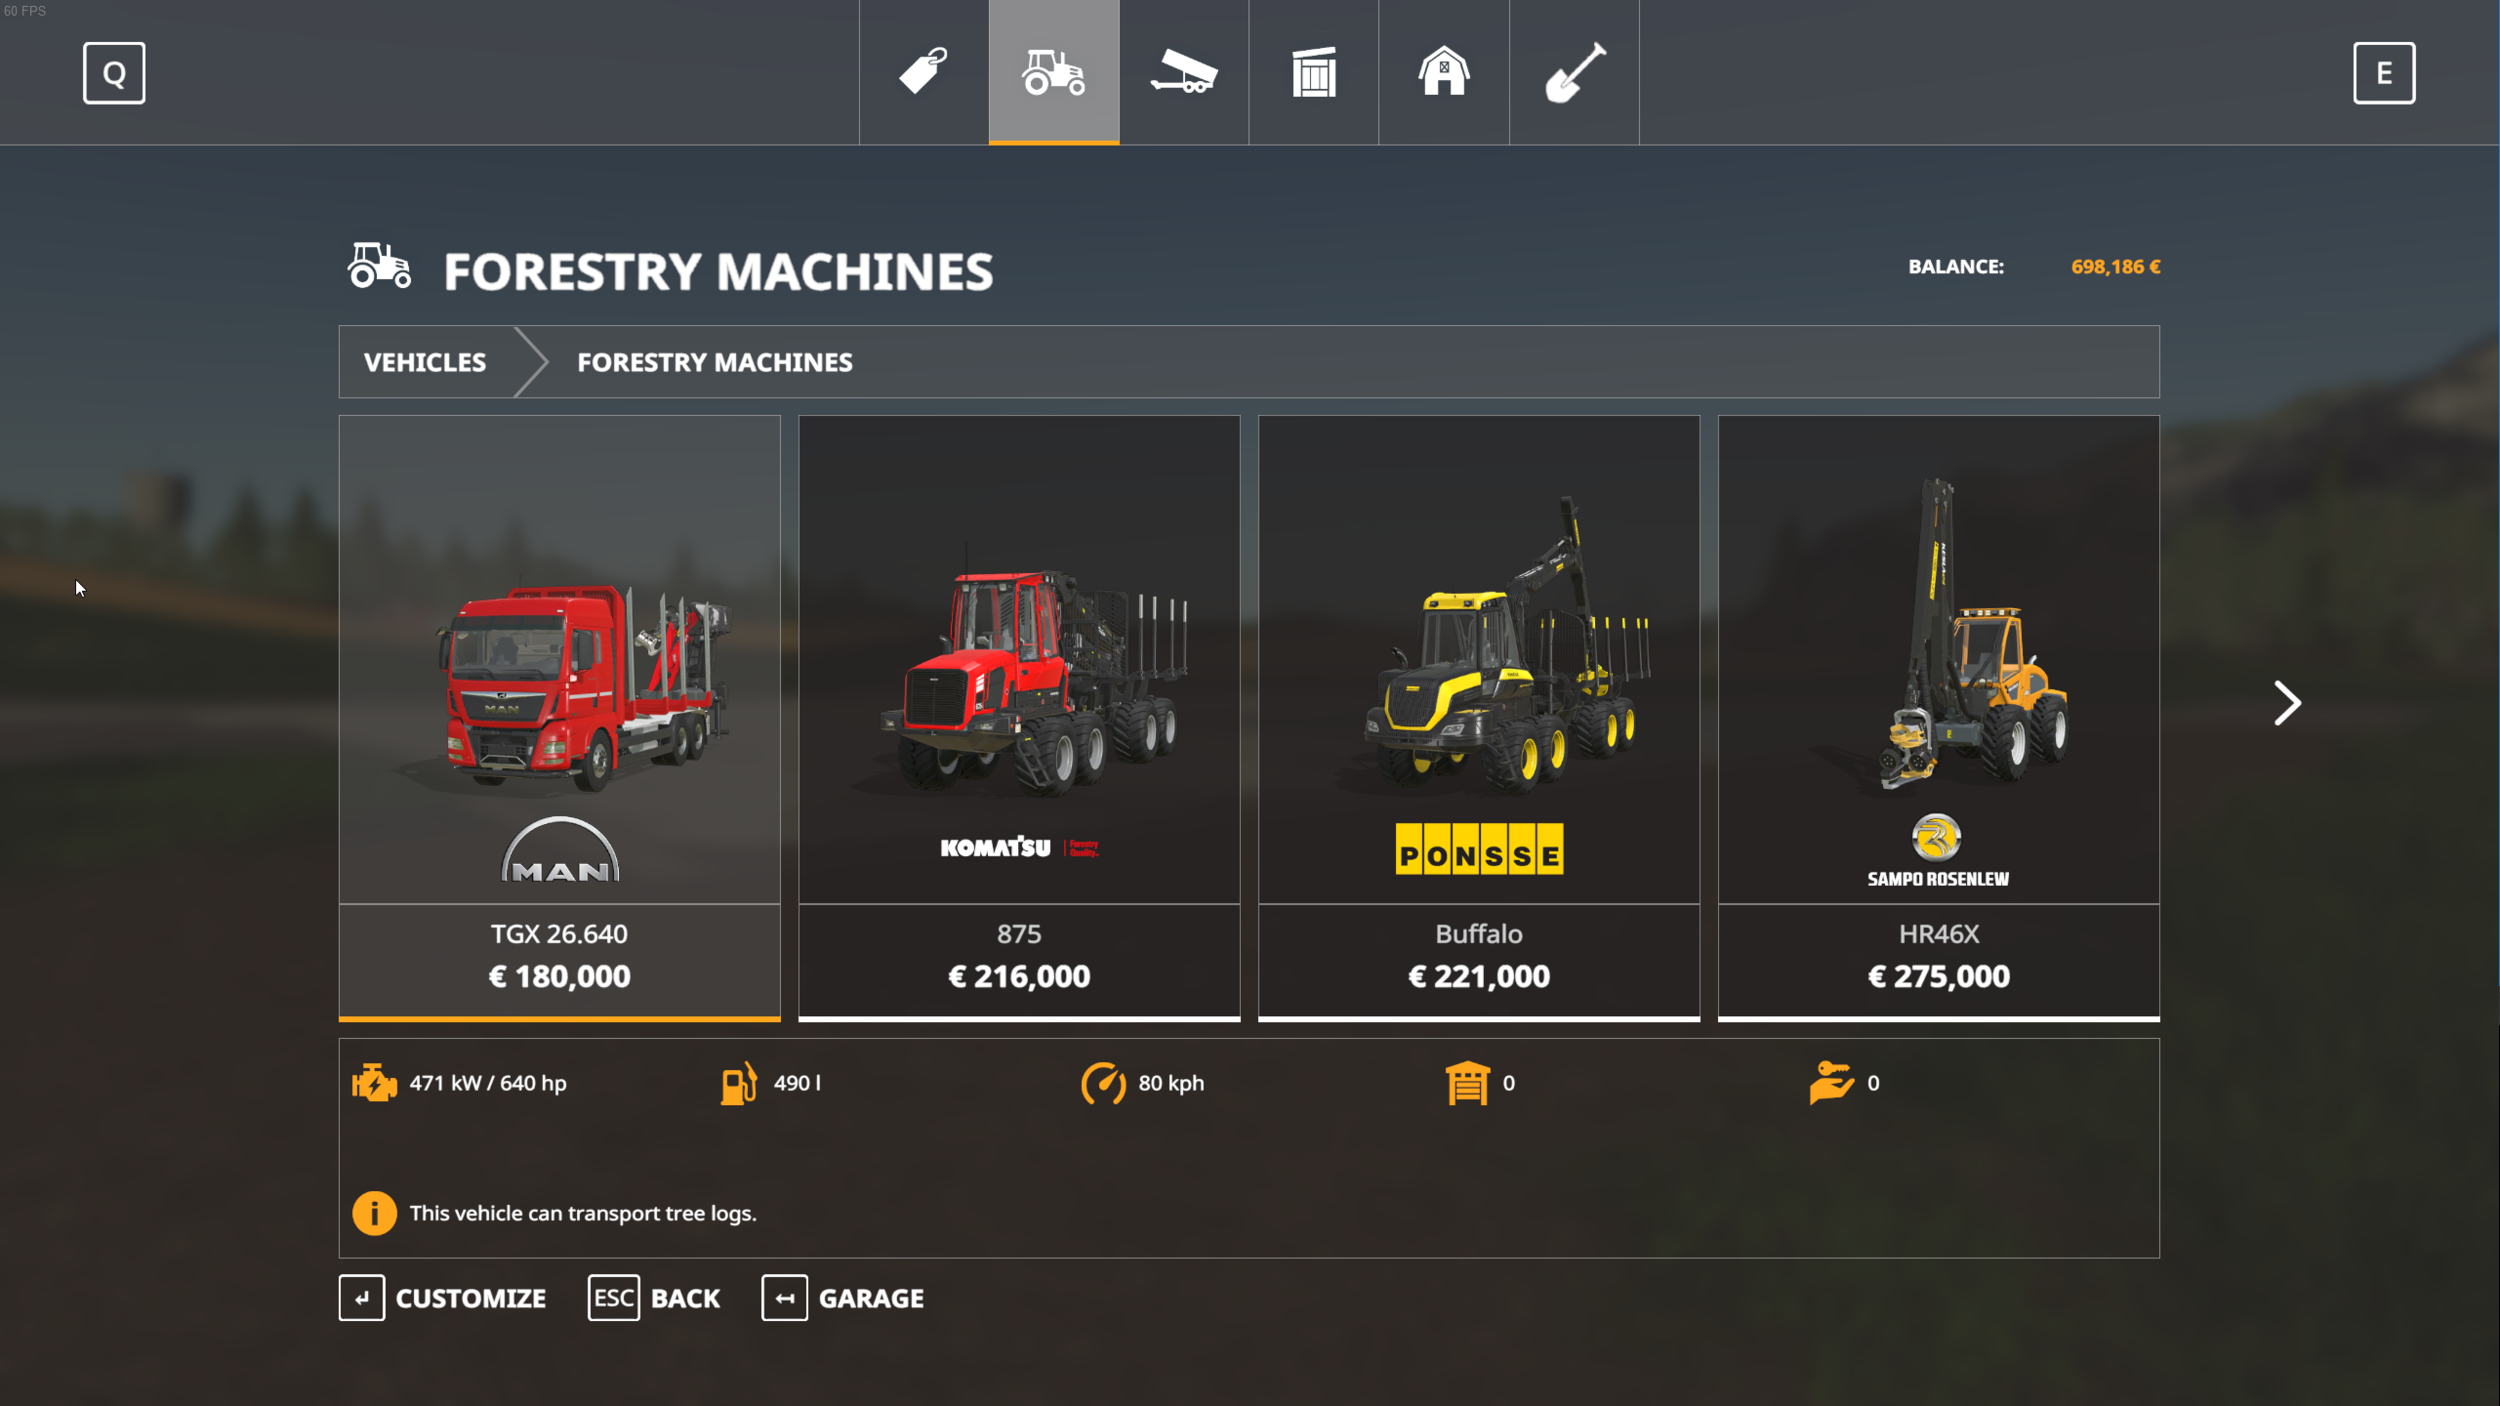 Almost everything that can be purchased in the game is a realistic reproduction of an existing tool or vehicle .